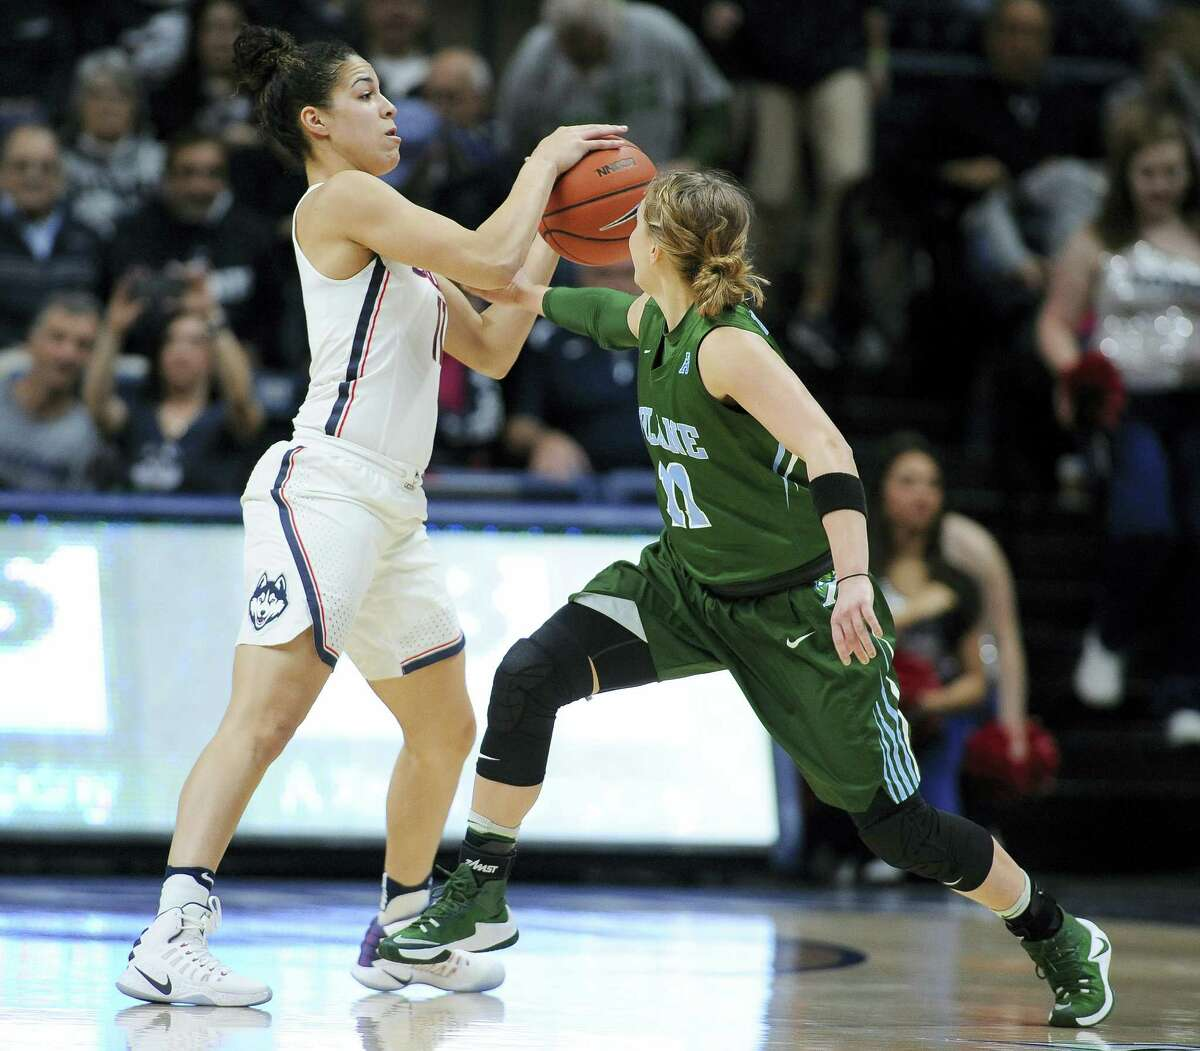 UConn's Kia Nurse, left, steals the ball from Tulane's Leslie Vorpahl during their game on Sunday.